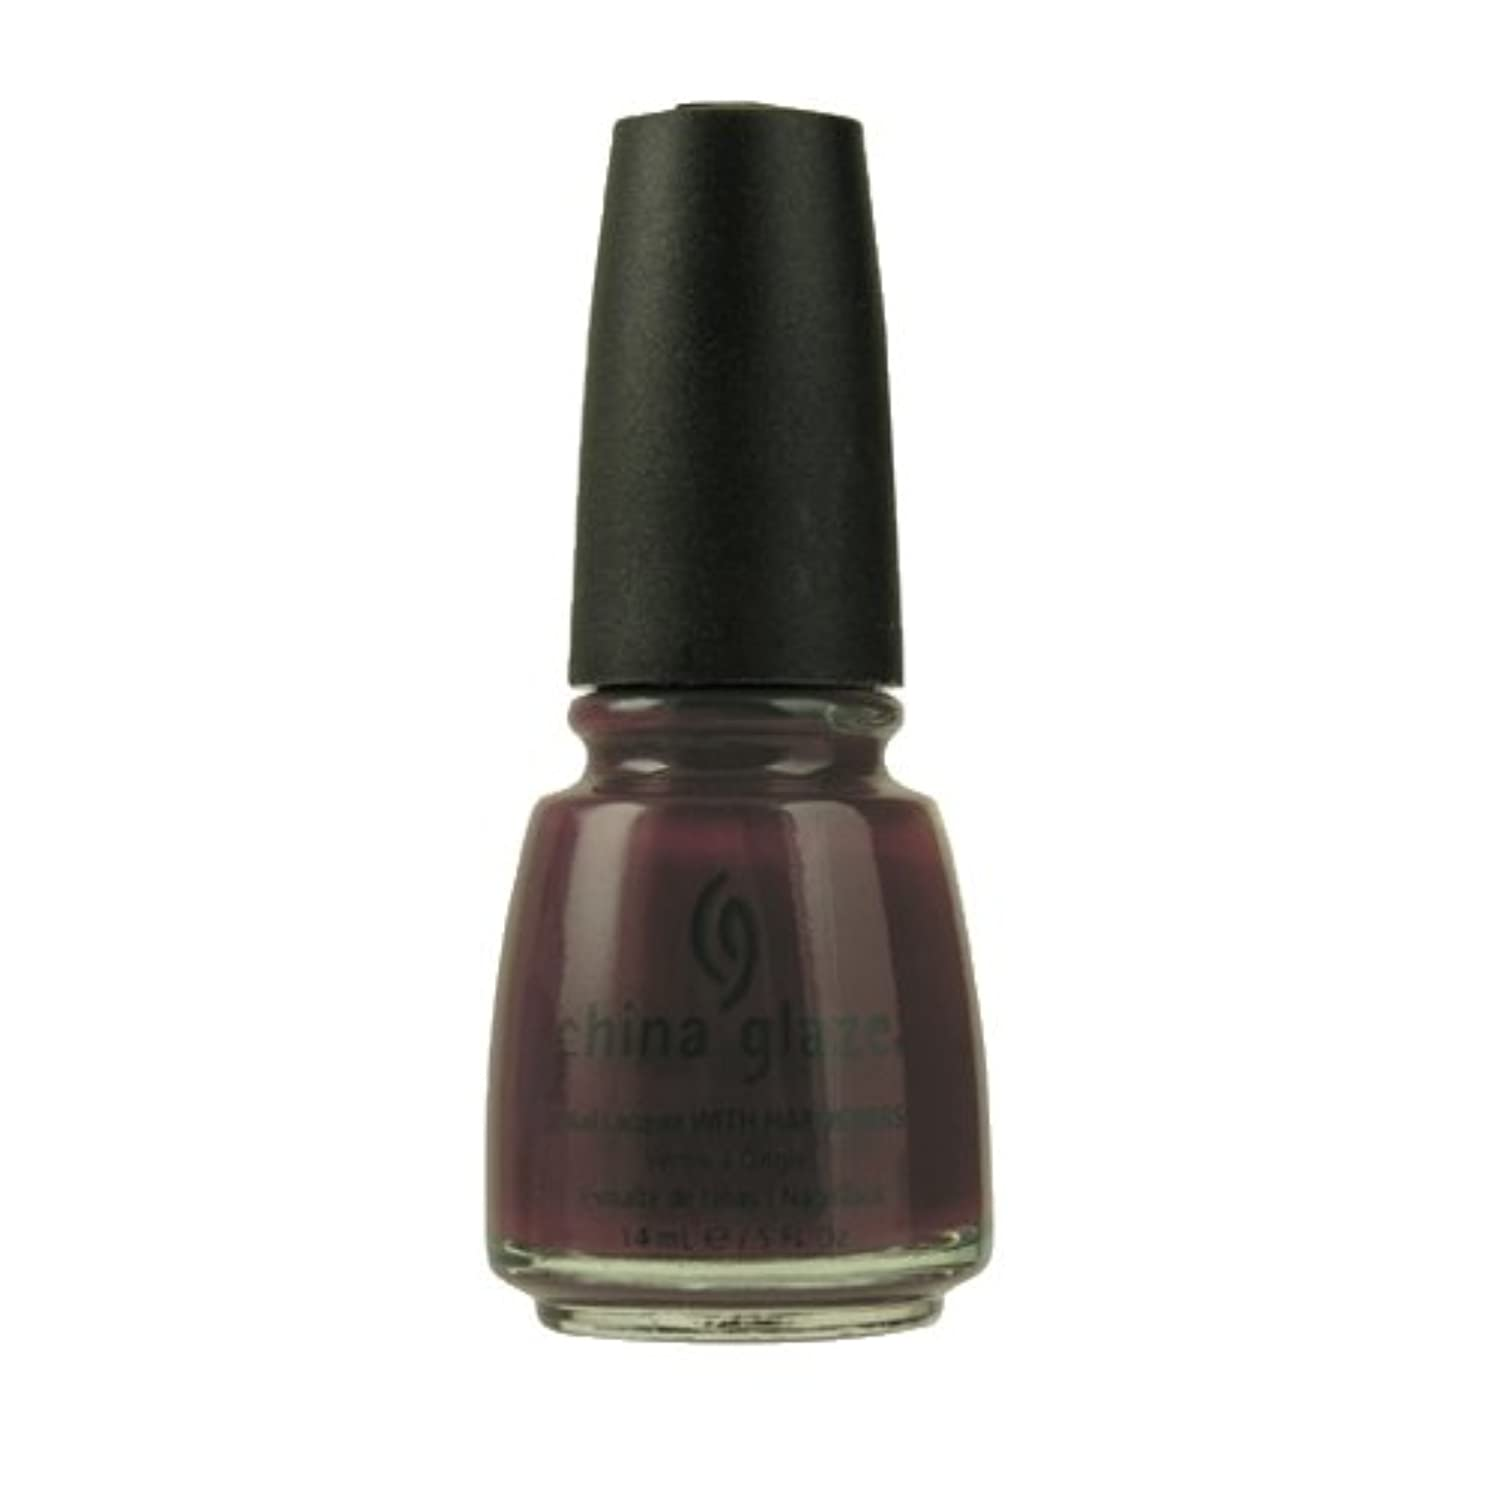 CHINA GLAZE Nail Lacquer with Nail Hardner - VIII (並行輸入品)